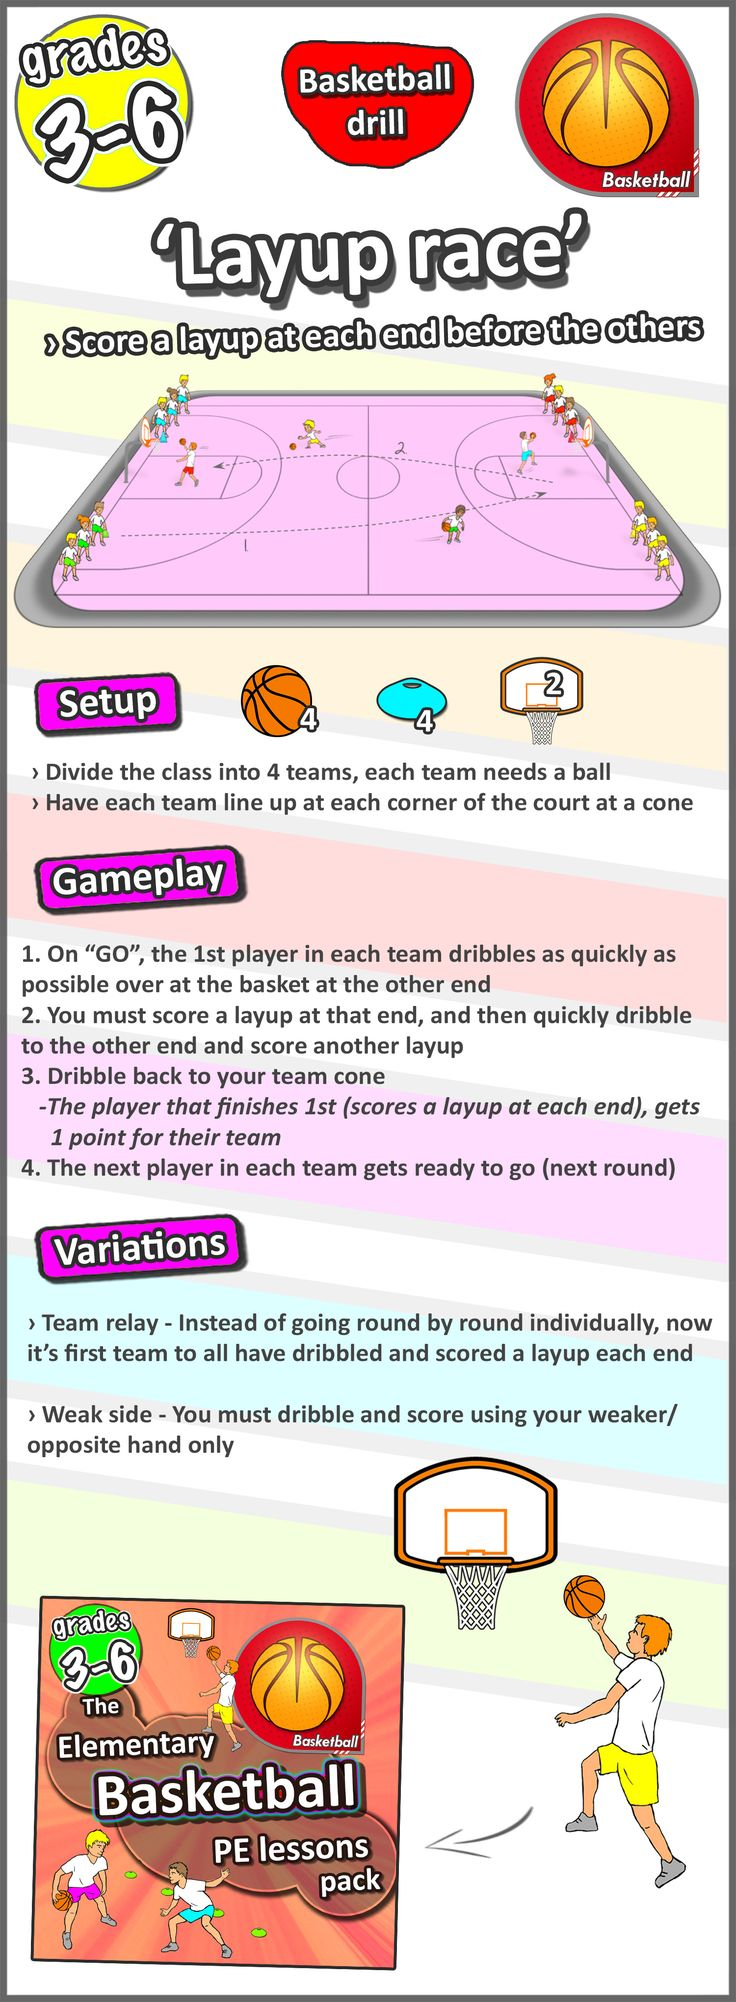 Basketball lesson plan - Layup race - A great gym PE idea for grades 3-6 at school